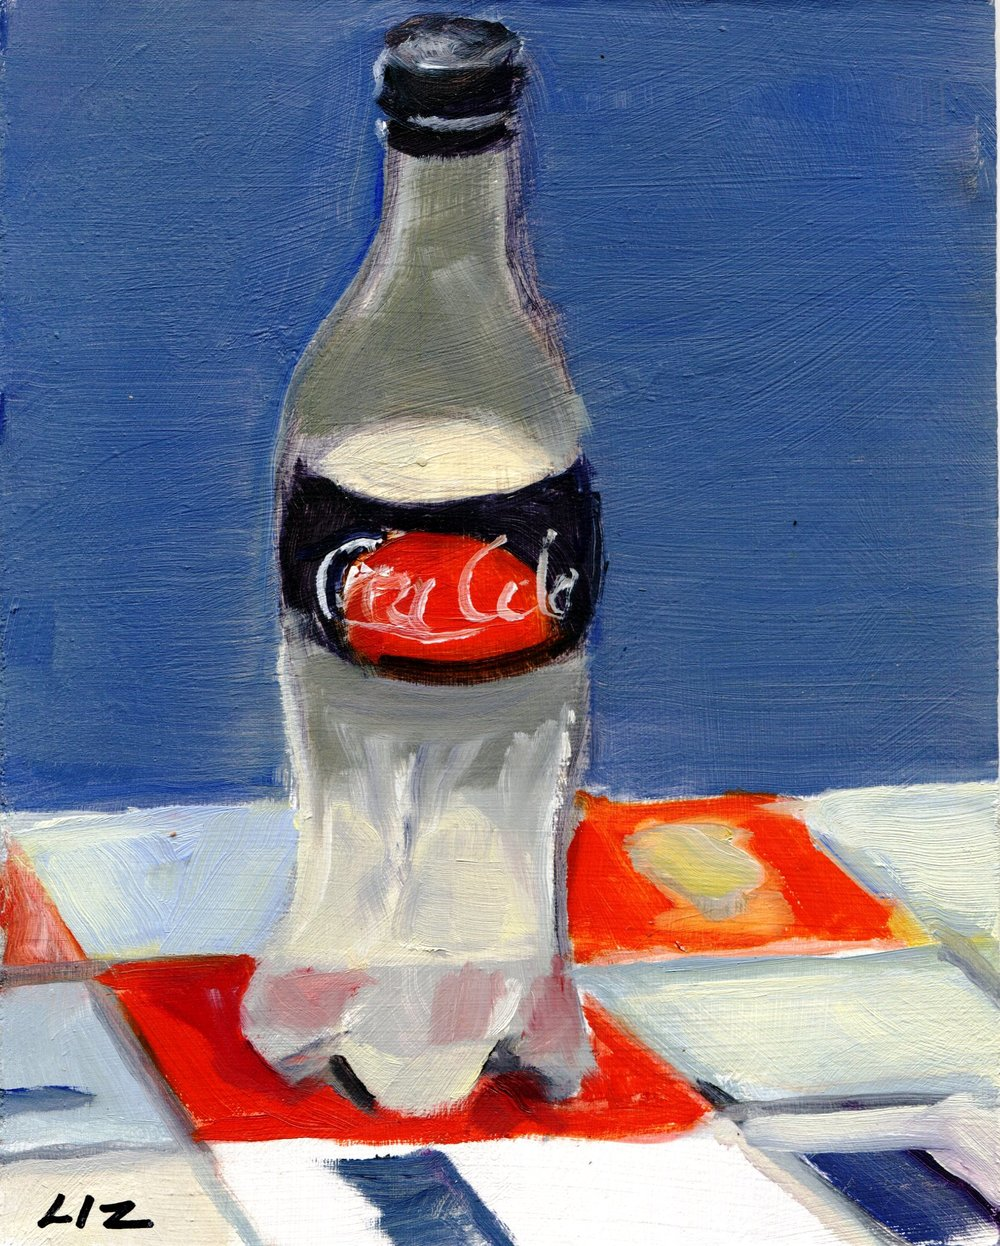 20B ELIZABETH SPEIGHT, COCA-COLA BOTTLE, OIL ON BOARD